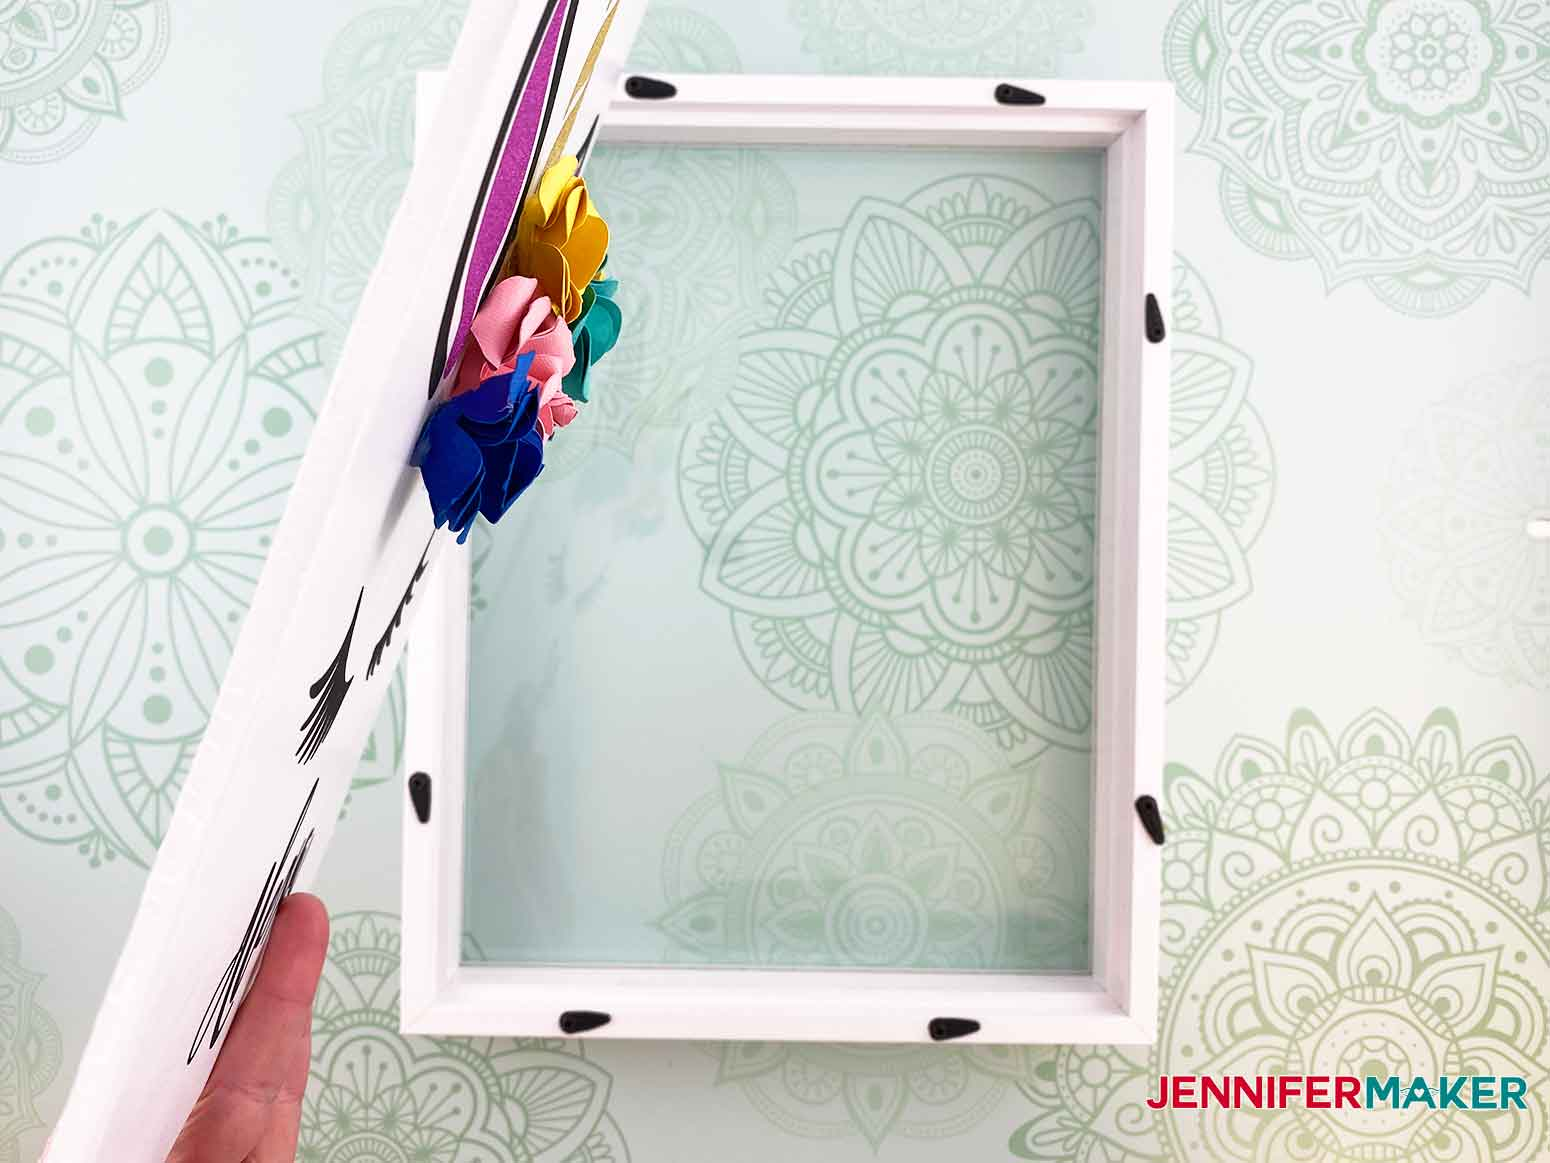 Insert the foam core into the frame for the personalized unicorn frame